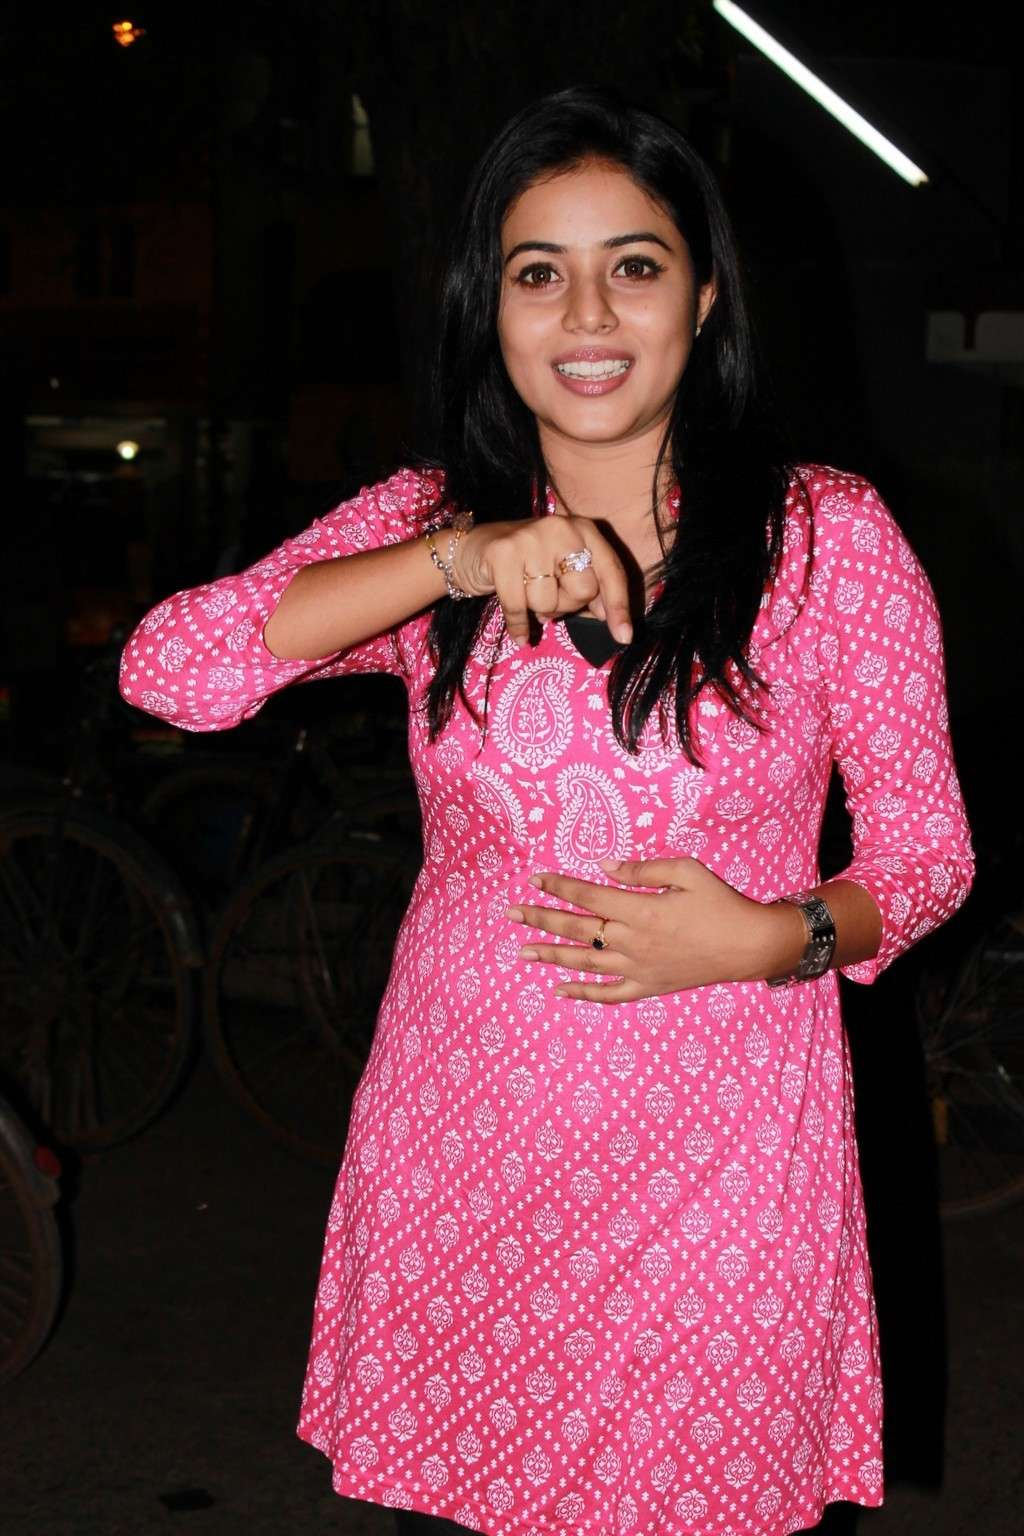 Poorna Bright in Pink Top Poorna21